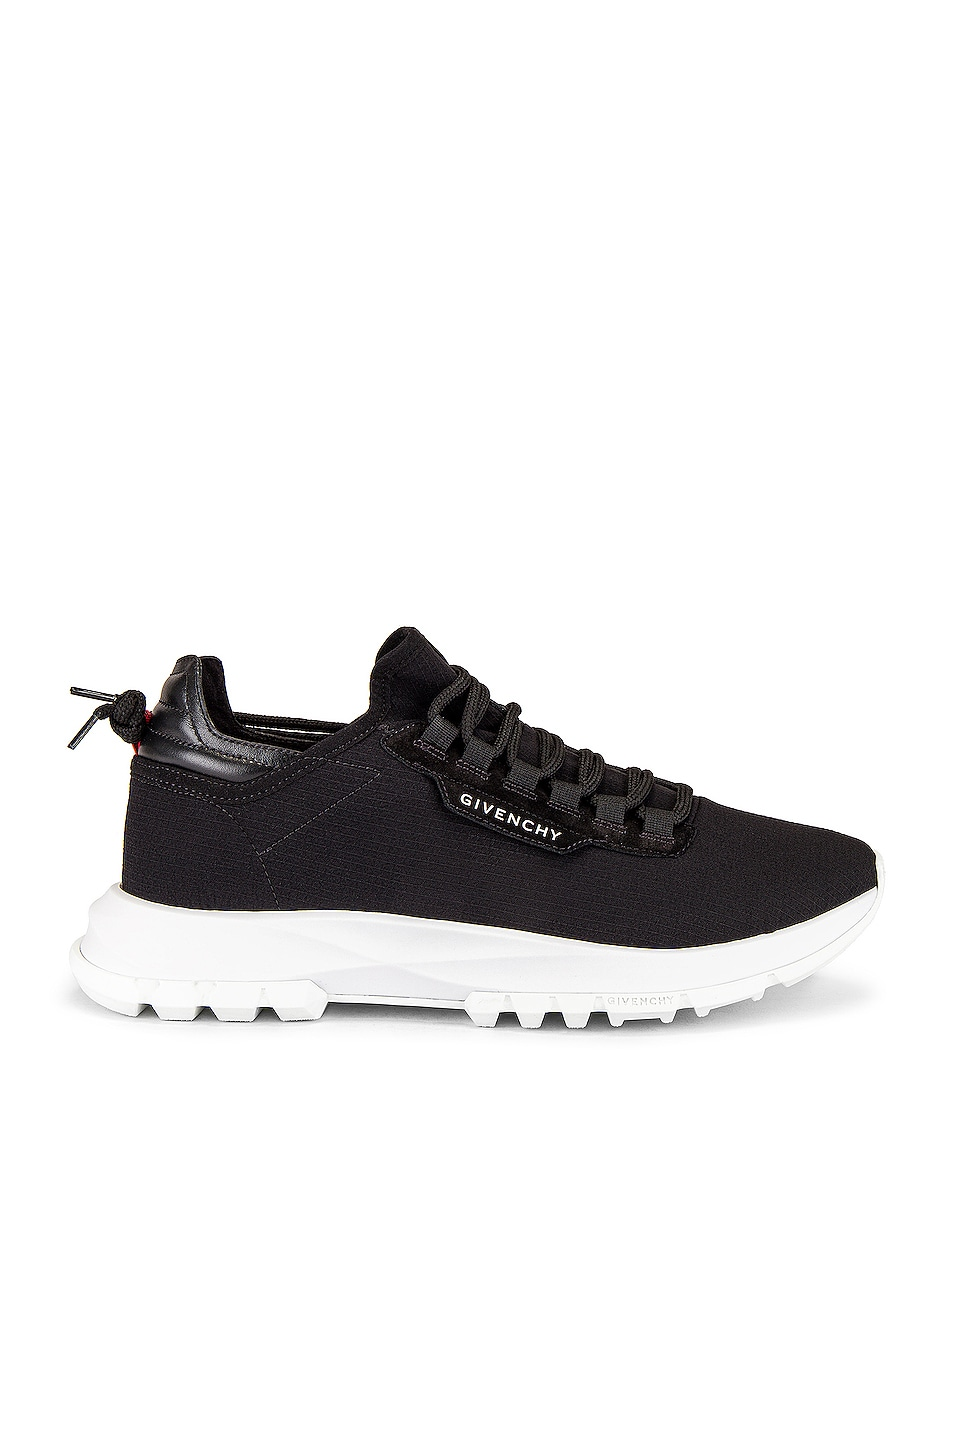 Image 1 of Givenchy Spectre Low Top Sneaker in Black